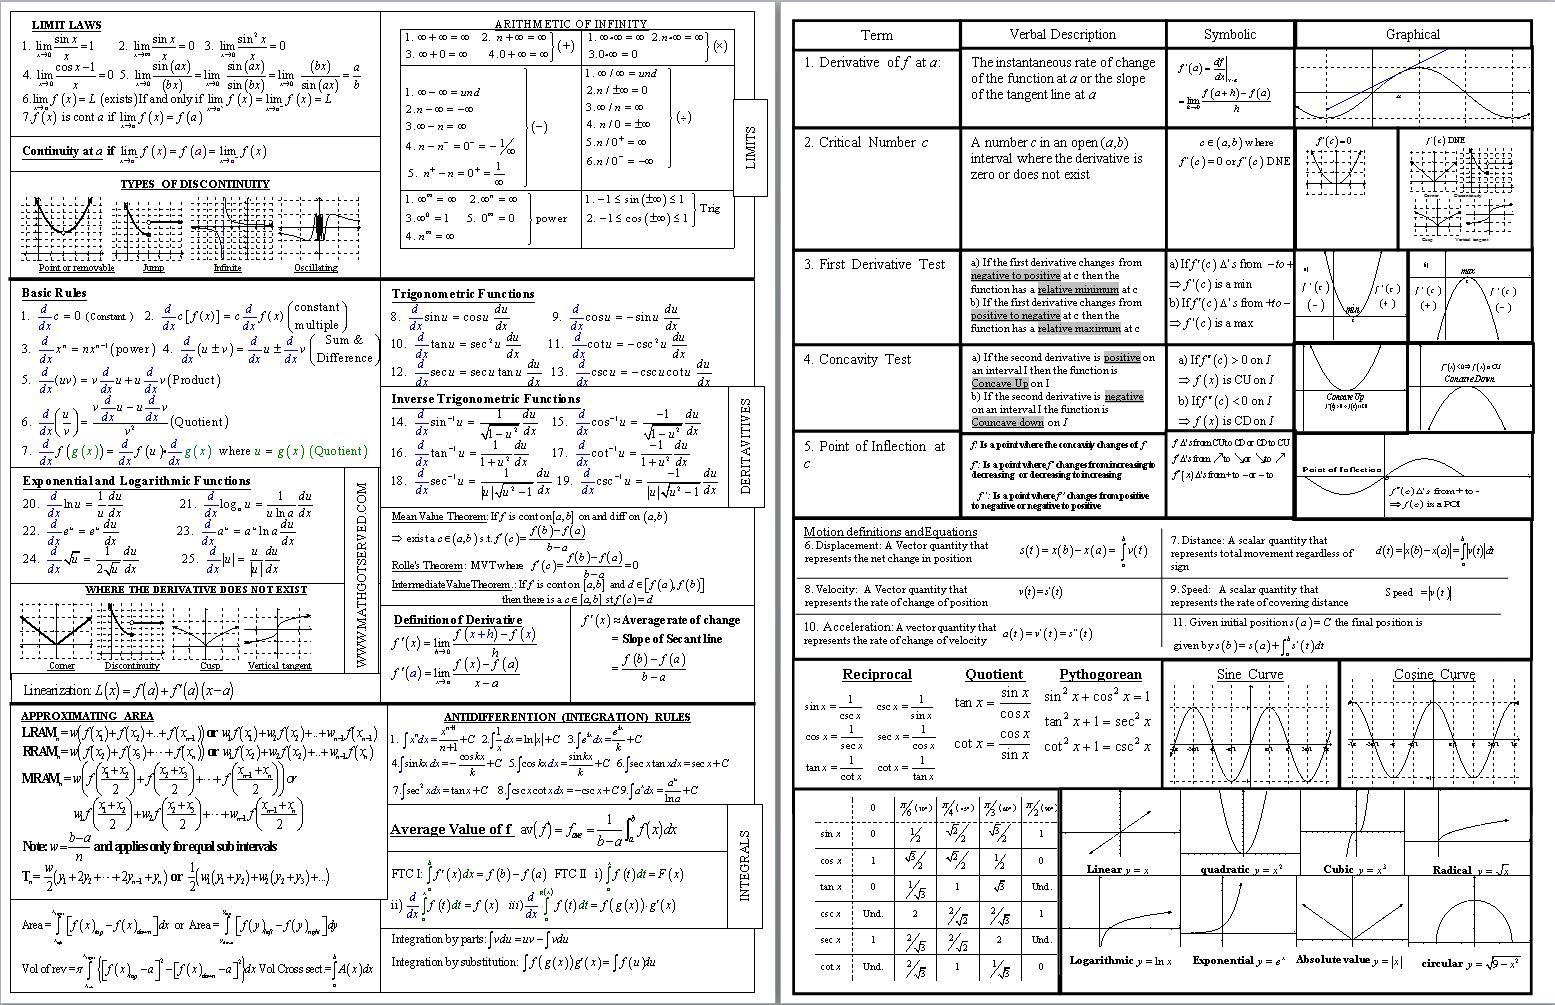 Pin By Mathgotserved On Ap Calculus Pinterest Math And New Schematic Software For Engineersquick Easy Circuits Ultimate Cheat Sheet Download A Copy Here Http